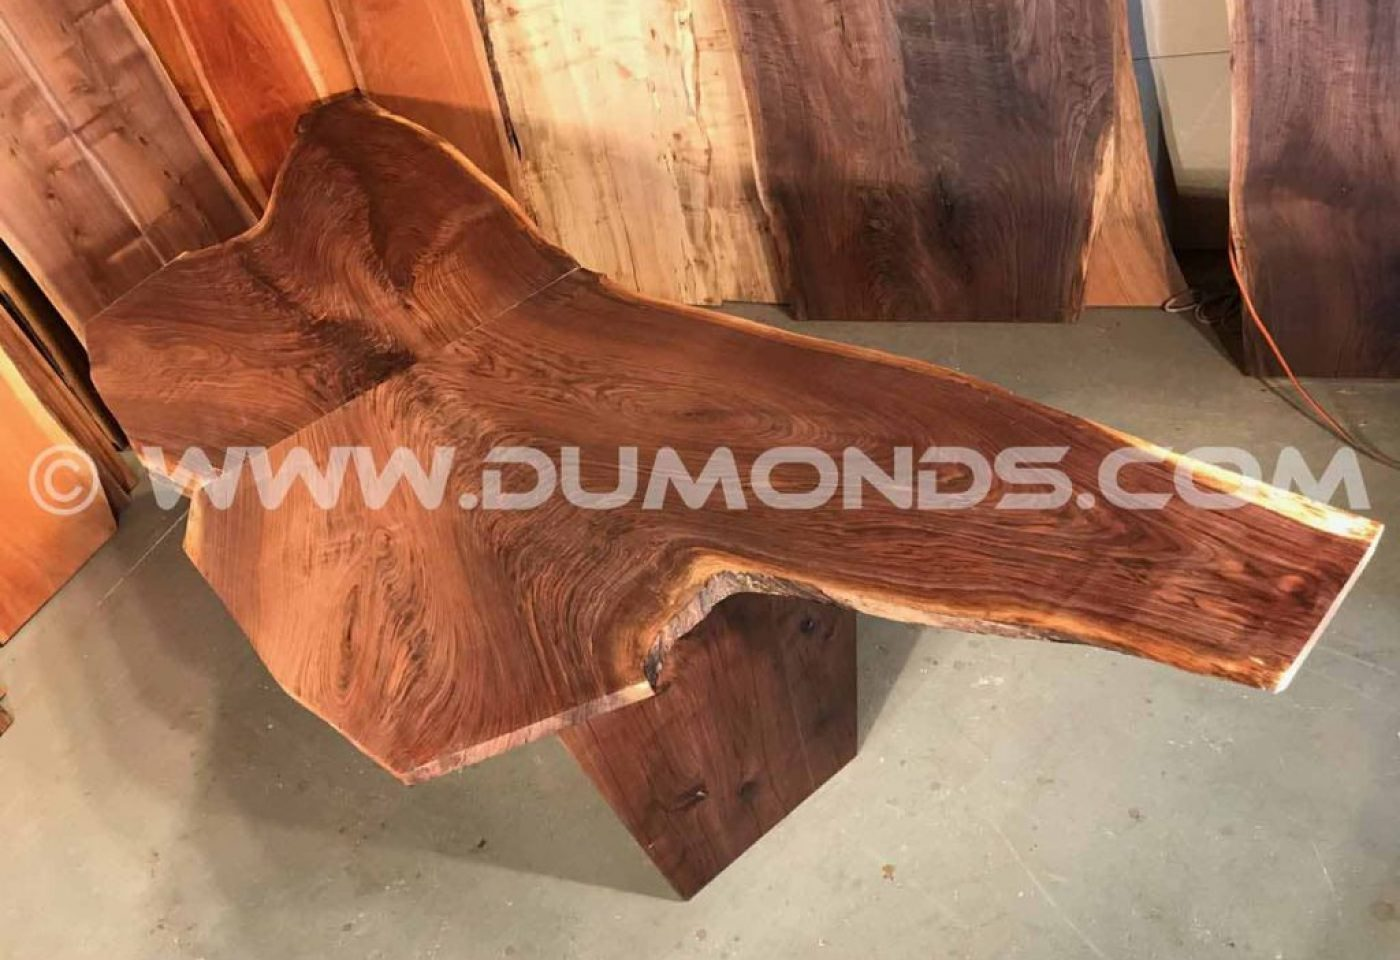 BOOK MATCHED WALNUT CROTCH CURLY WALNUT TABLE WITH WALNUT BASE